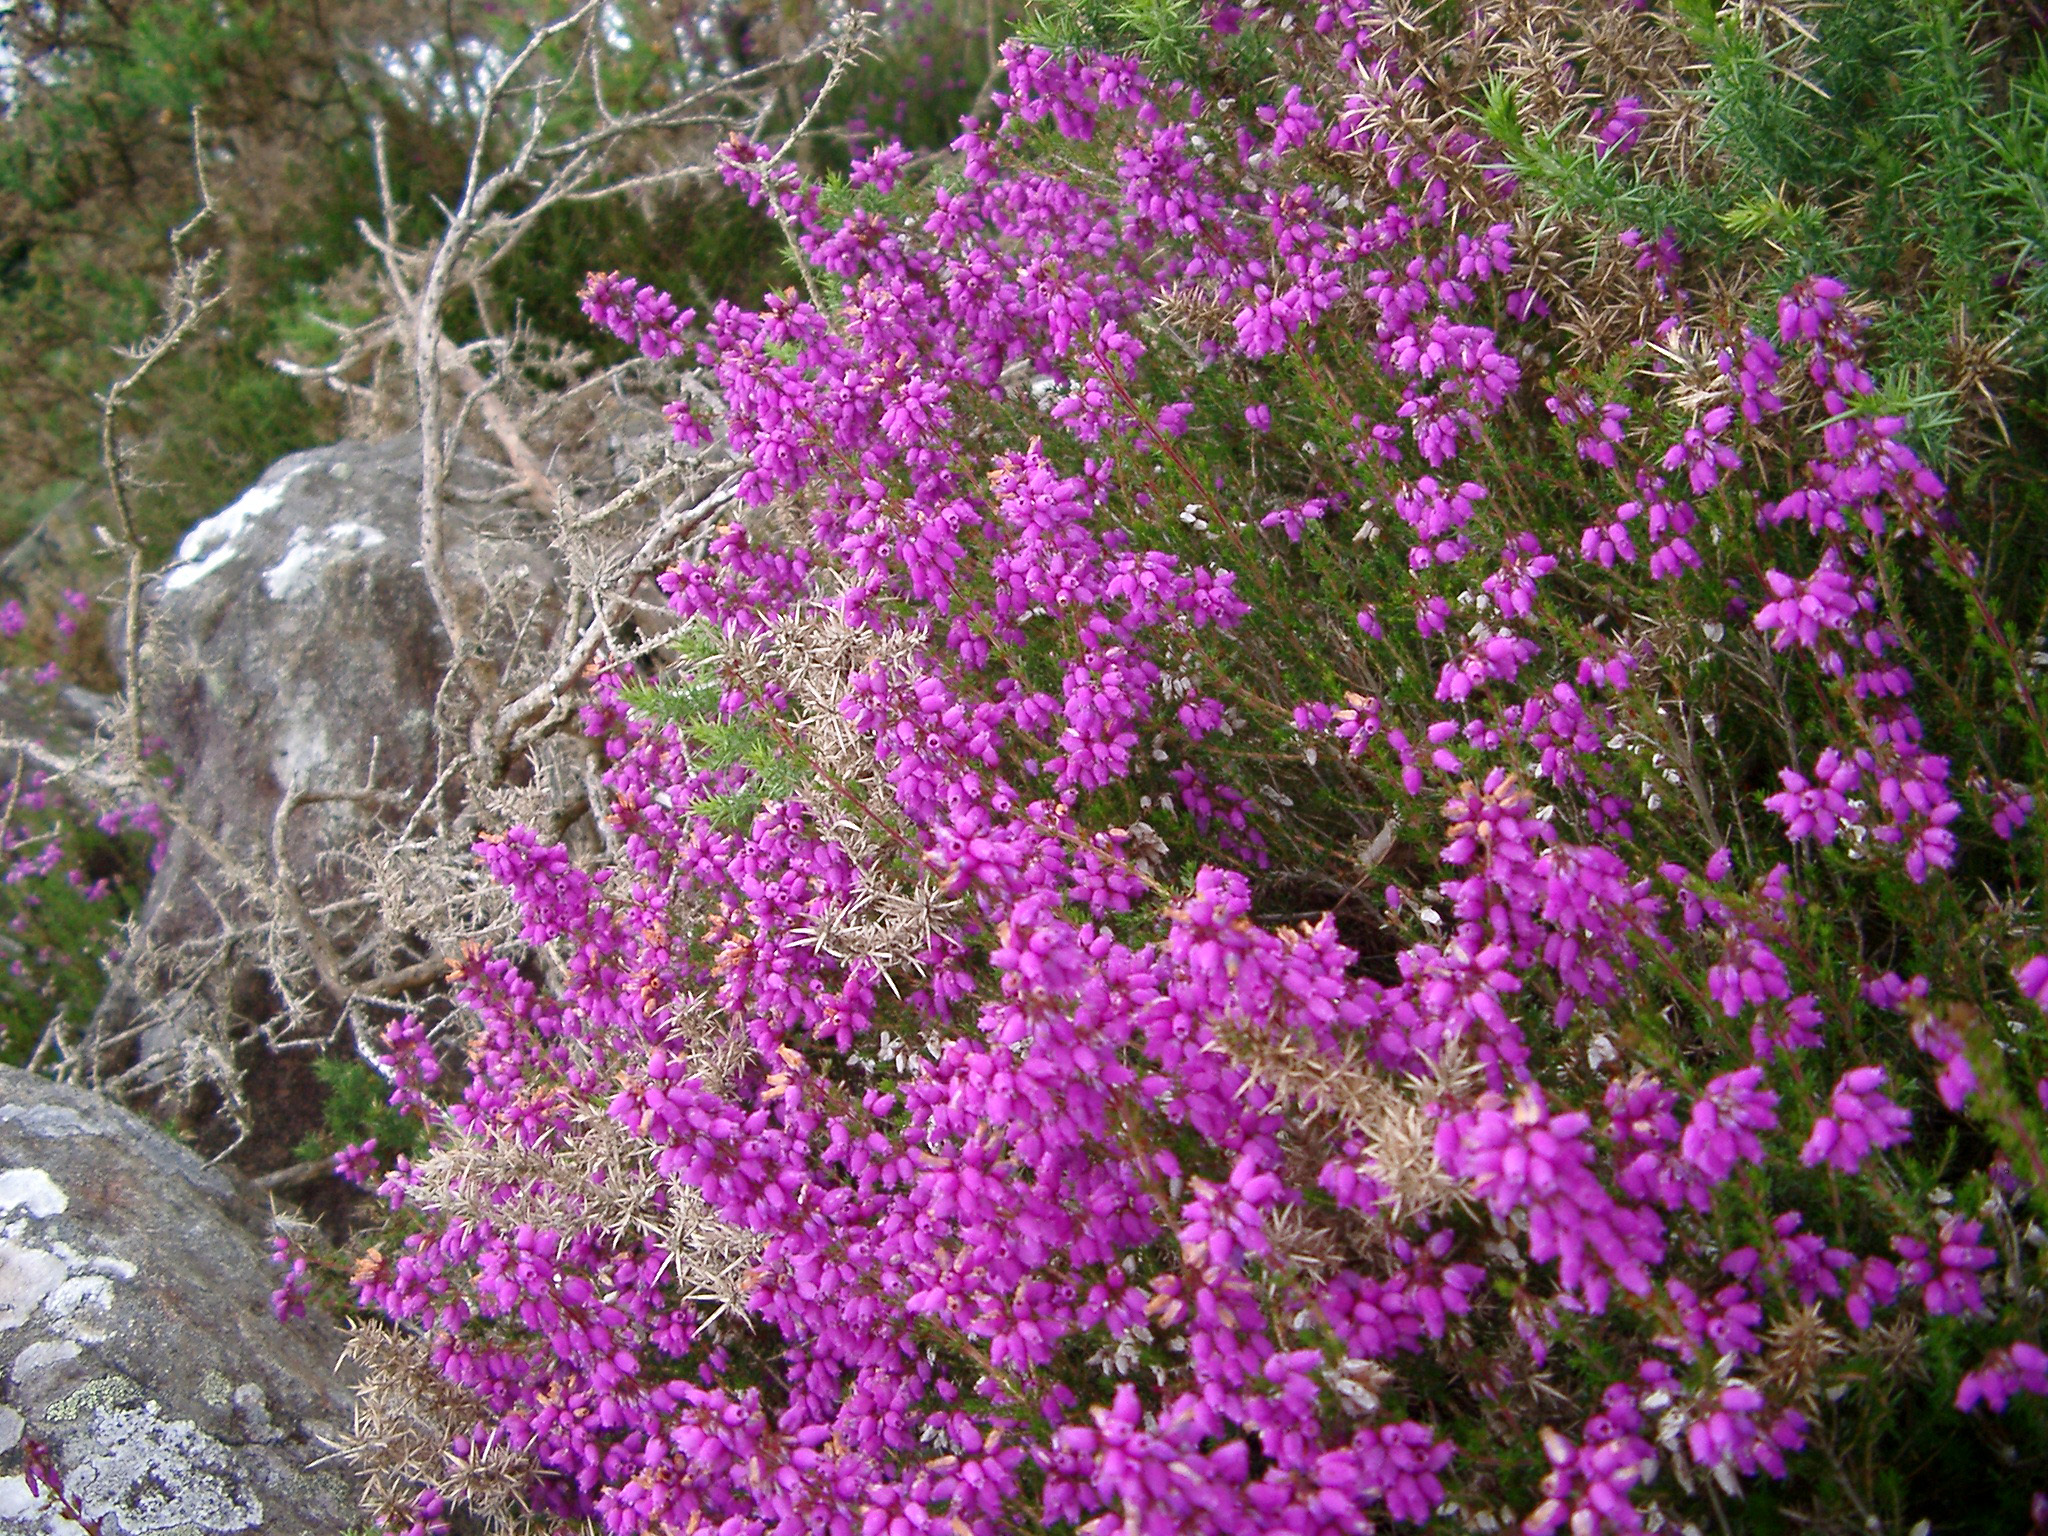 Colorful bush of flowering magenta heather or heath with its pretty bell-shaped flowers